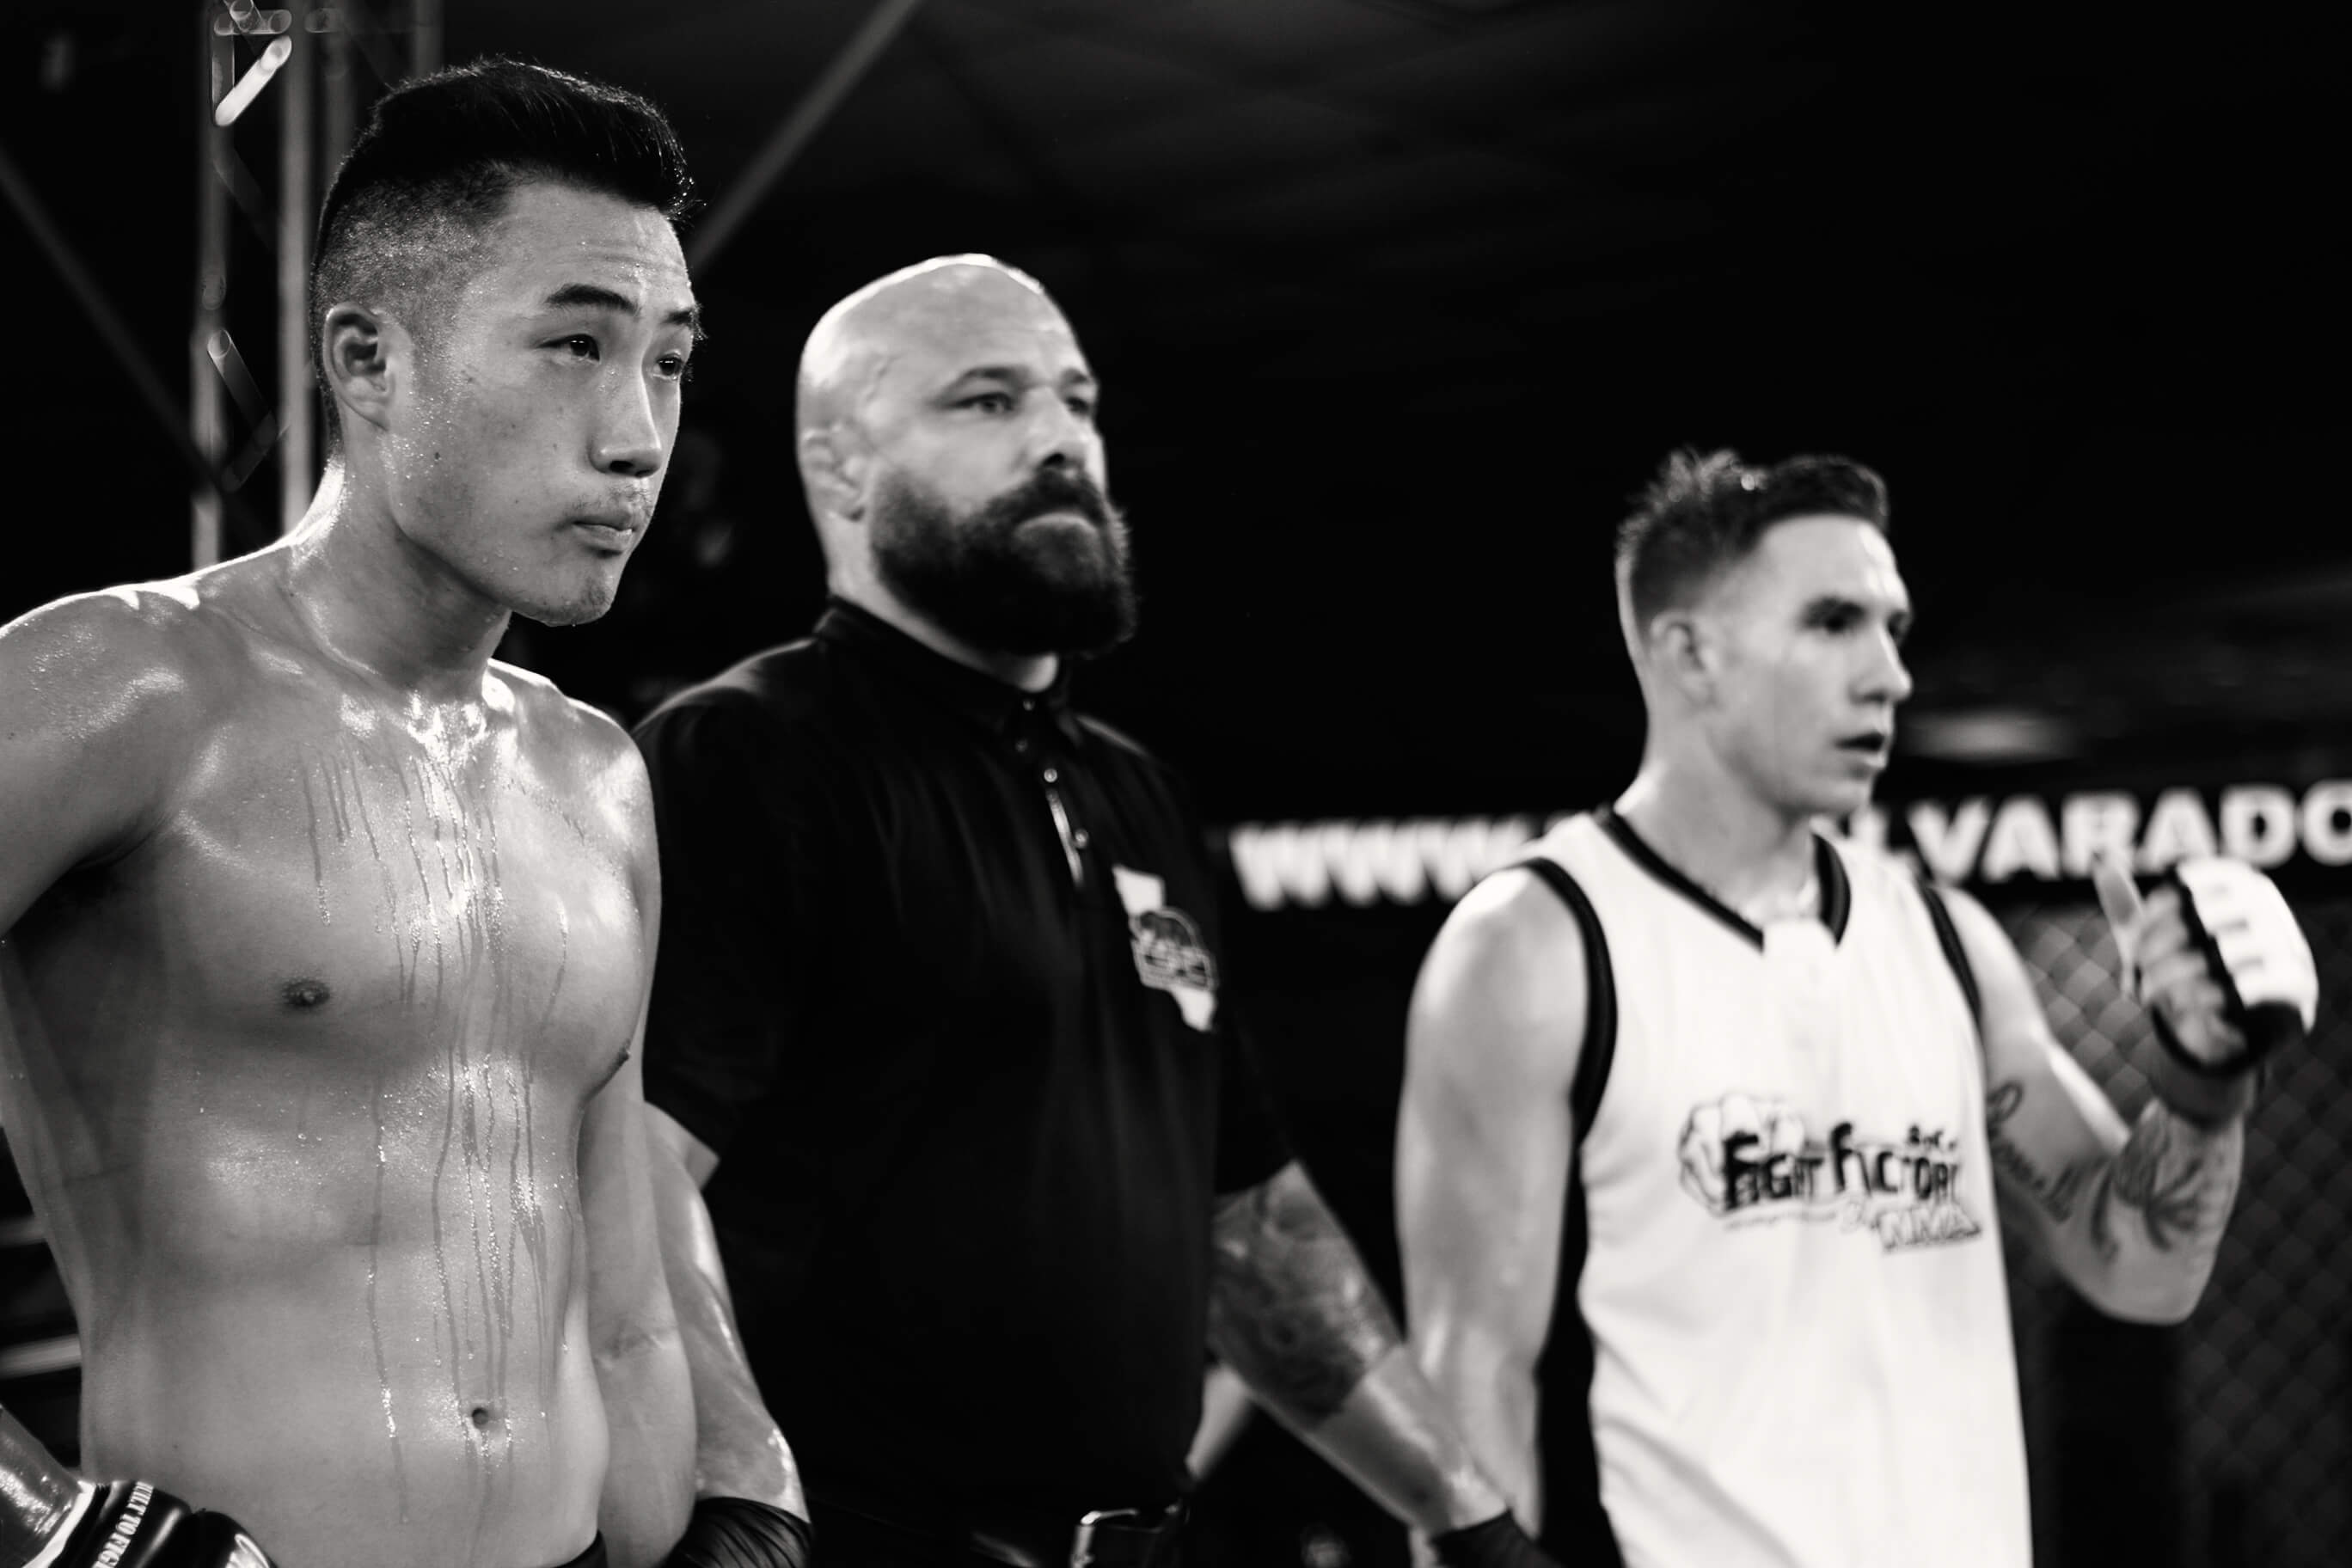 Josh Kim and opponent at CFL VIII